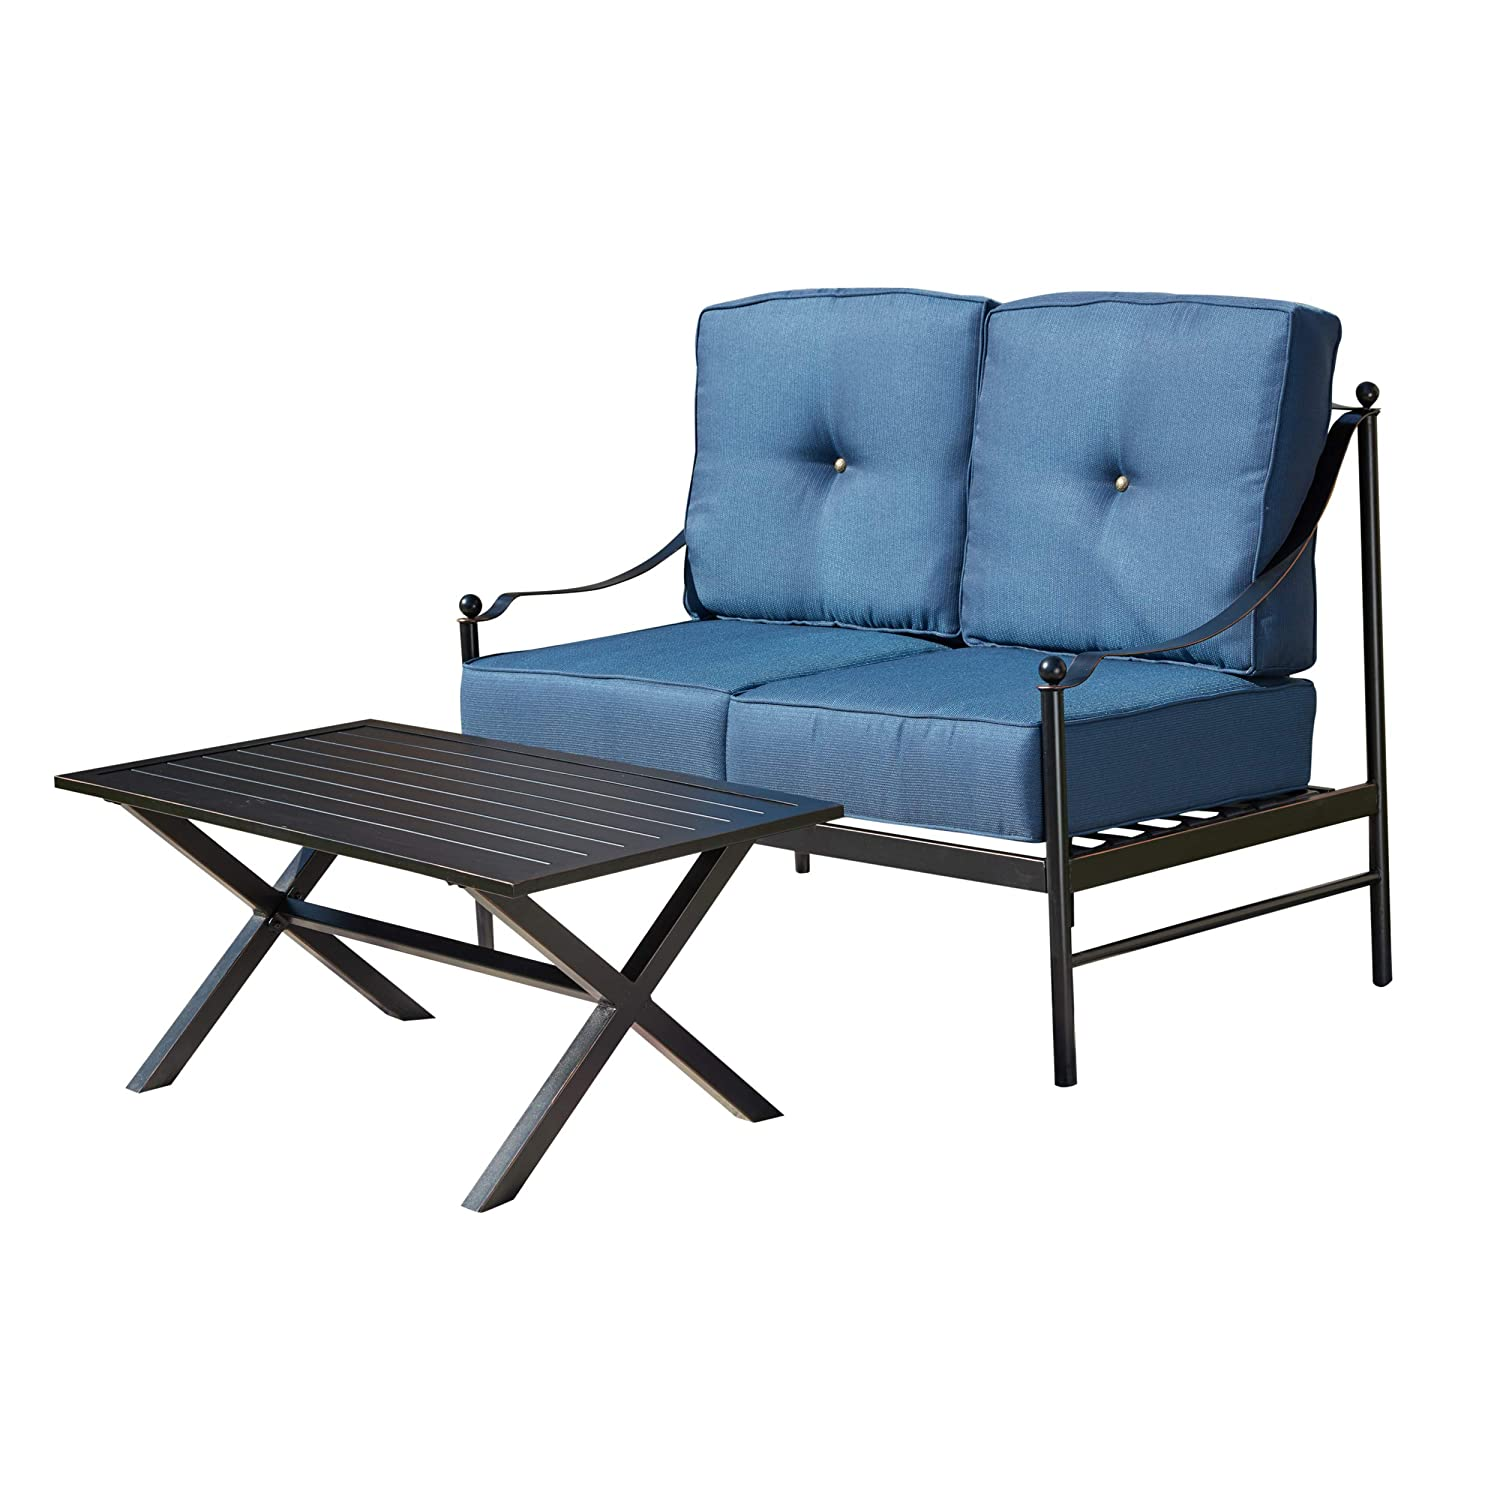 Blue LOKATSE HOME 2-Piece Outdoor Patio Loveseat Furniture Set with 1 Double Chair with Seat Cushions and 1 Coffee Table